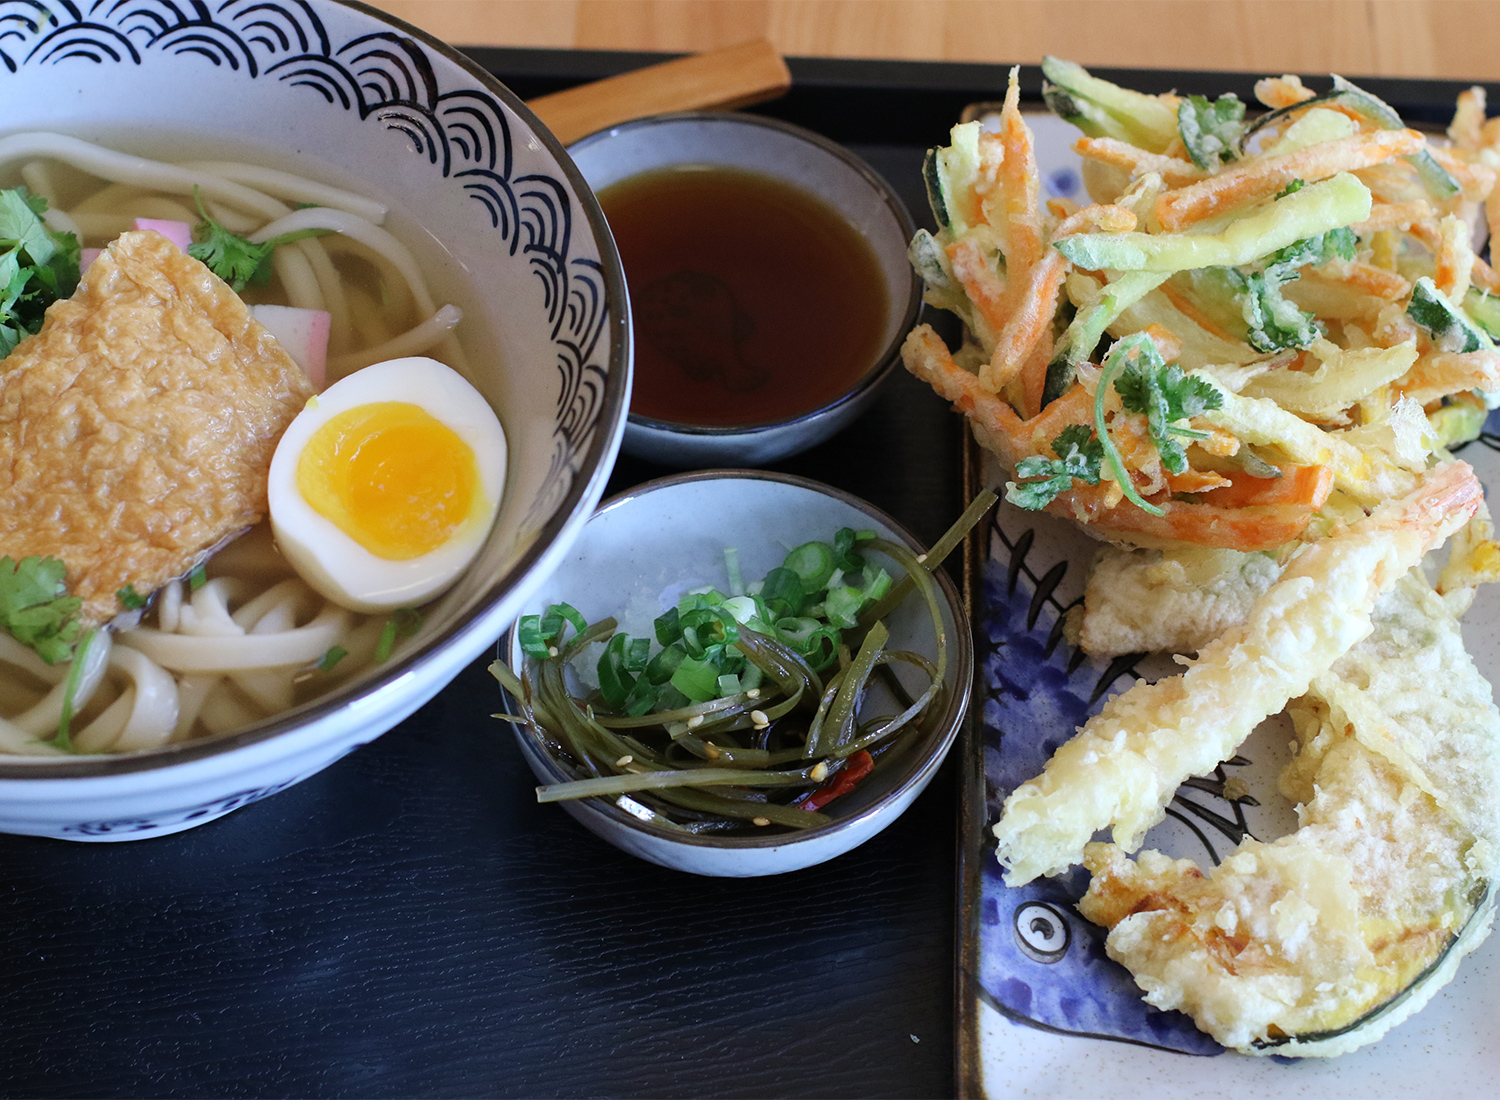 Udon and Tempura at Ippinn Udon and Tempura in Santa Rosa. Heather Irwin/PD